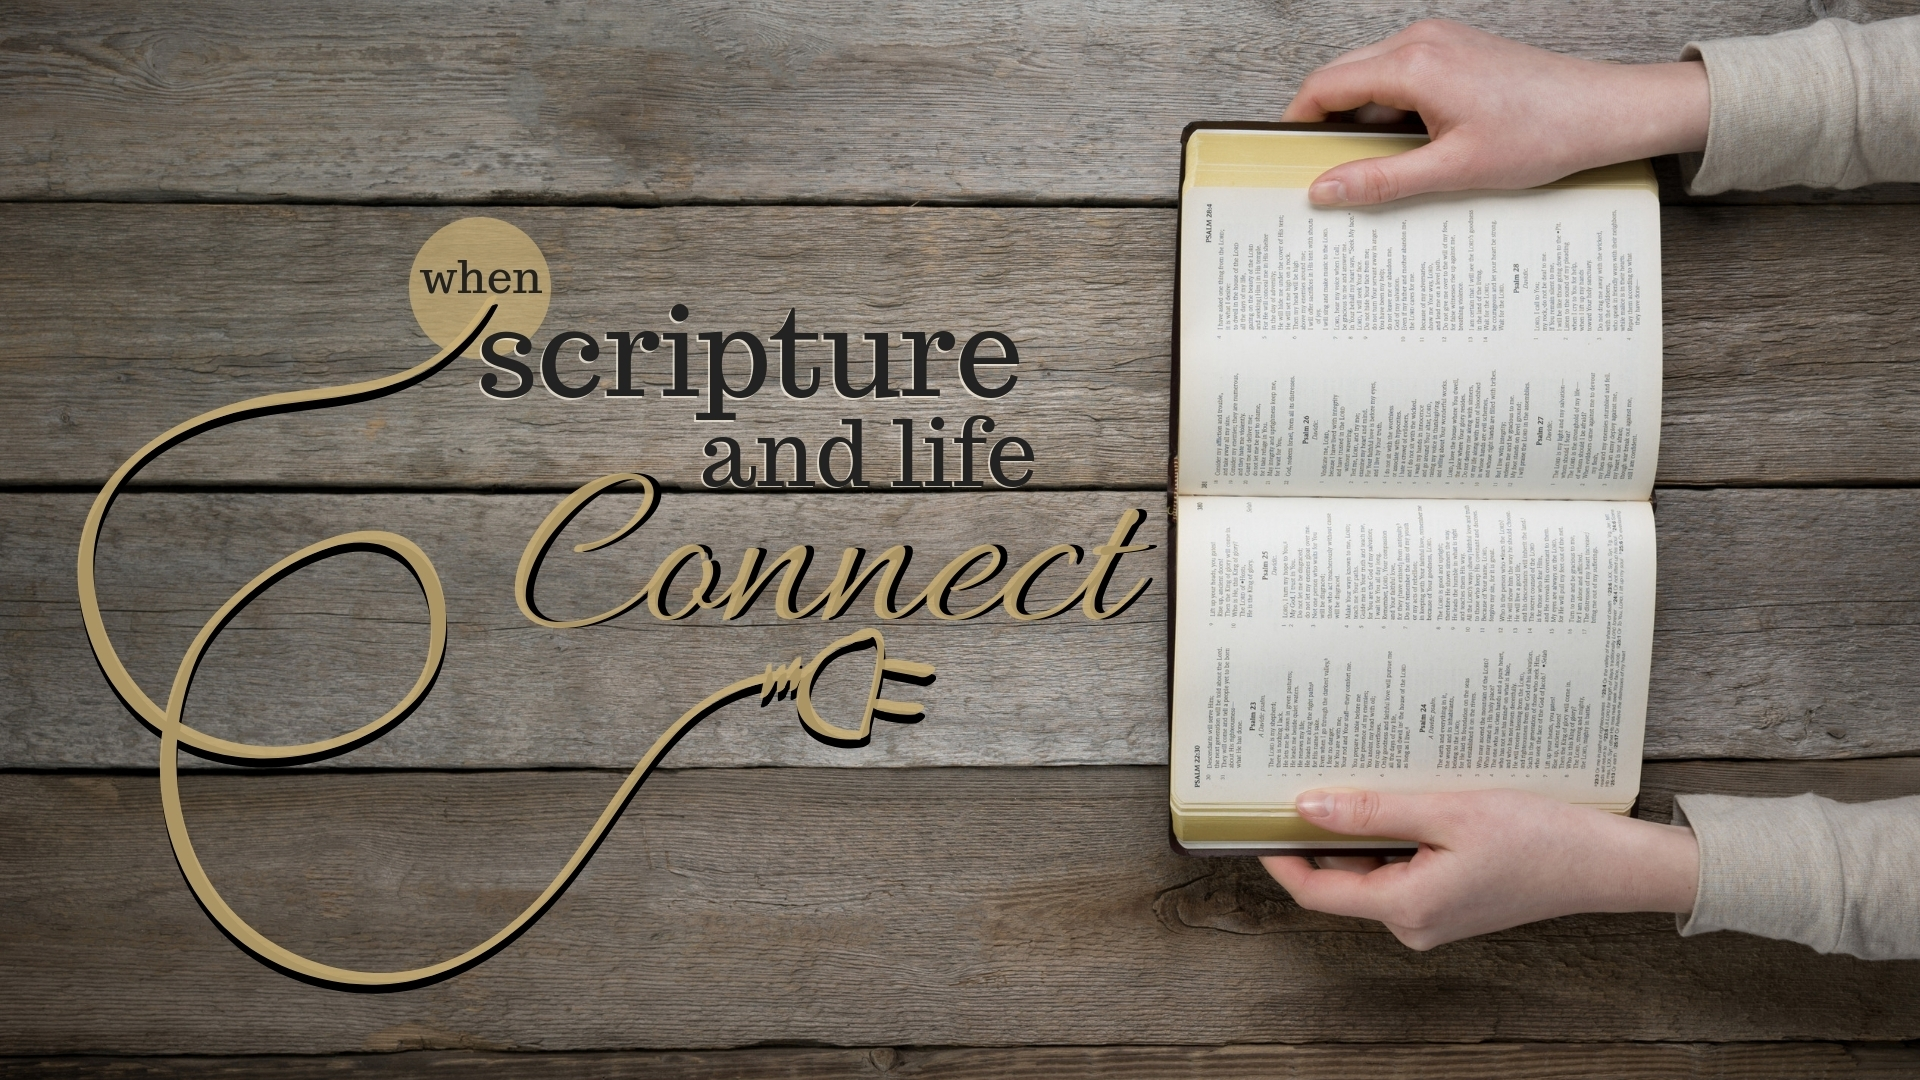 when scripture and life connect Title.jpg